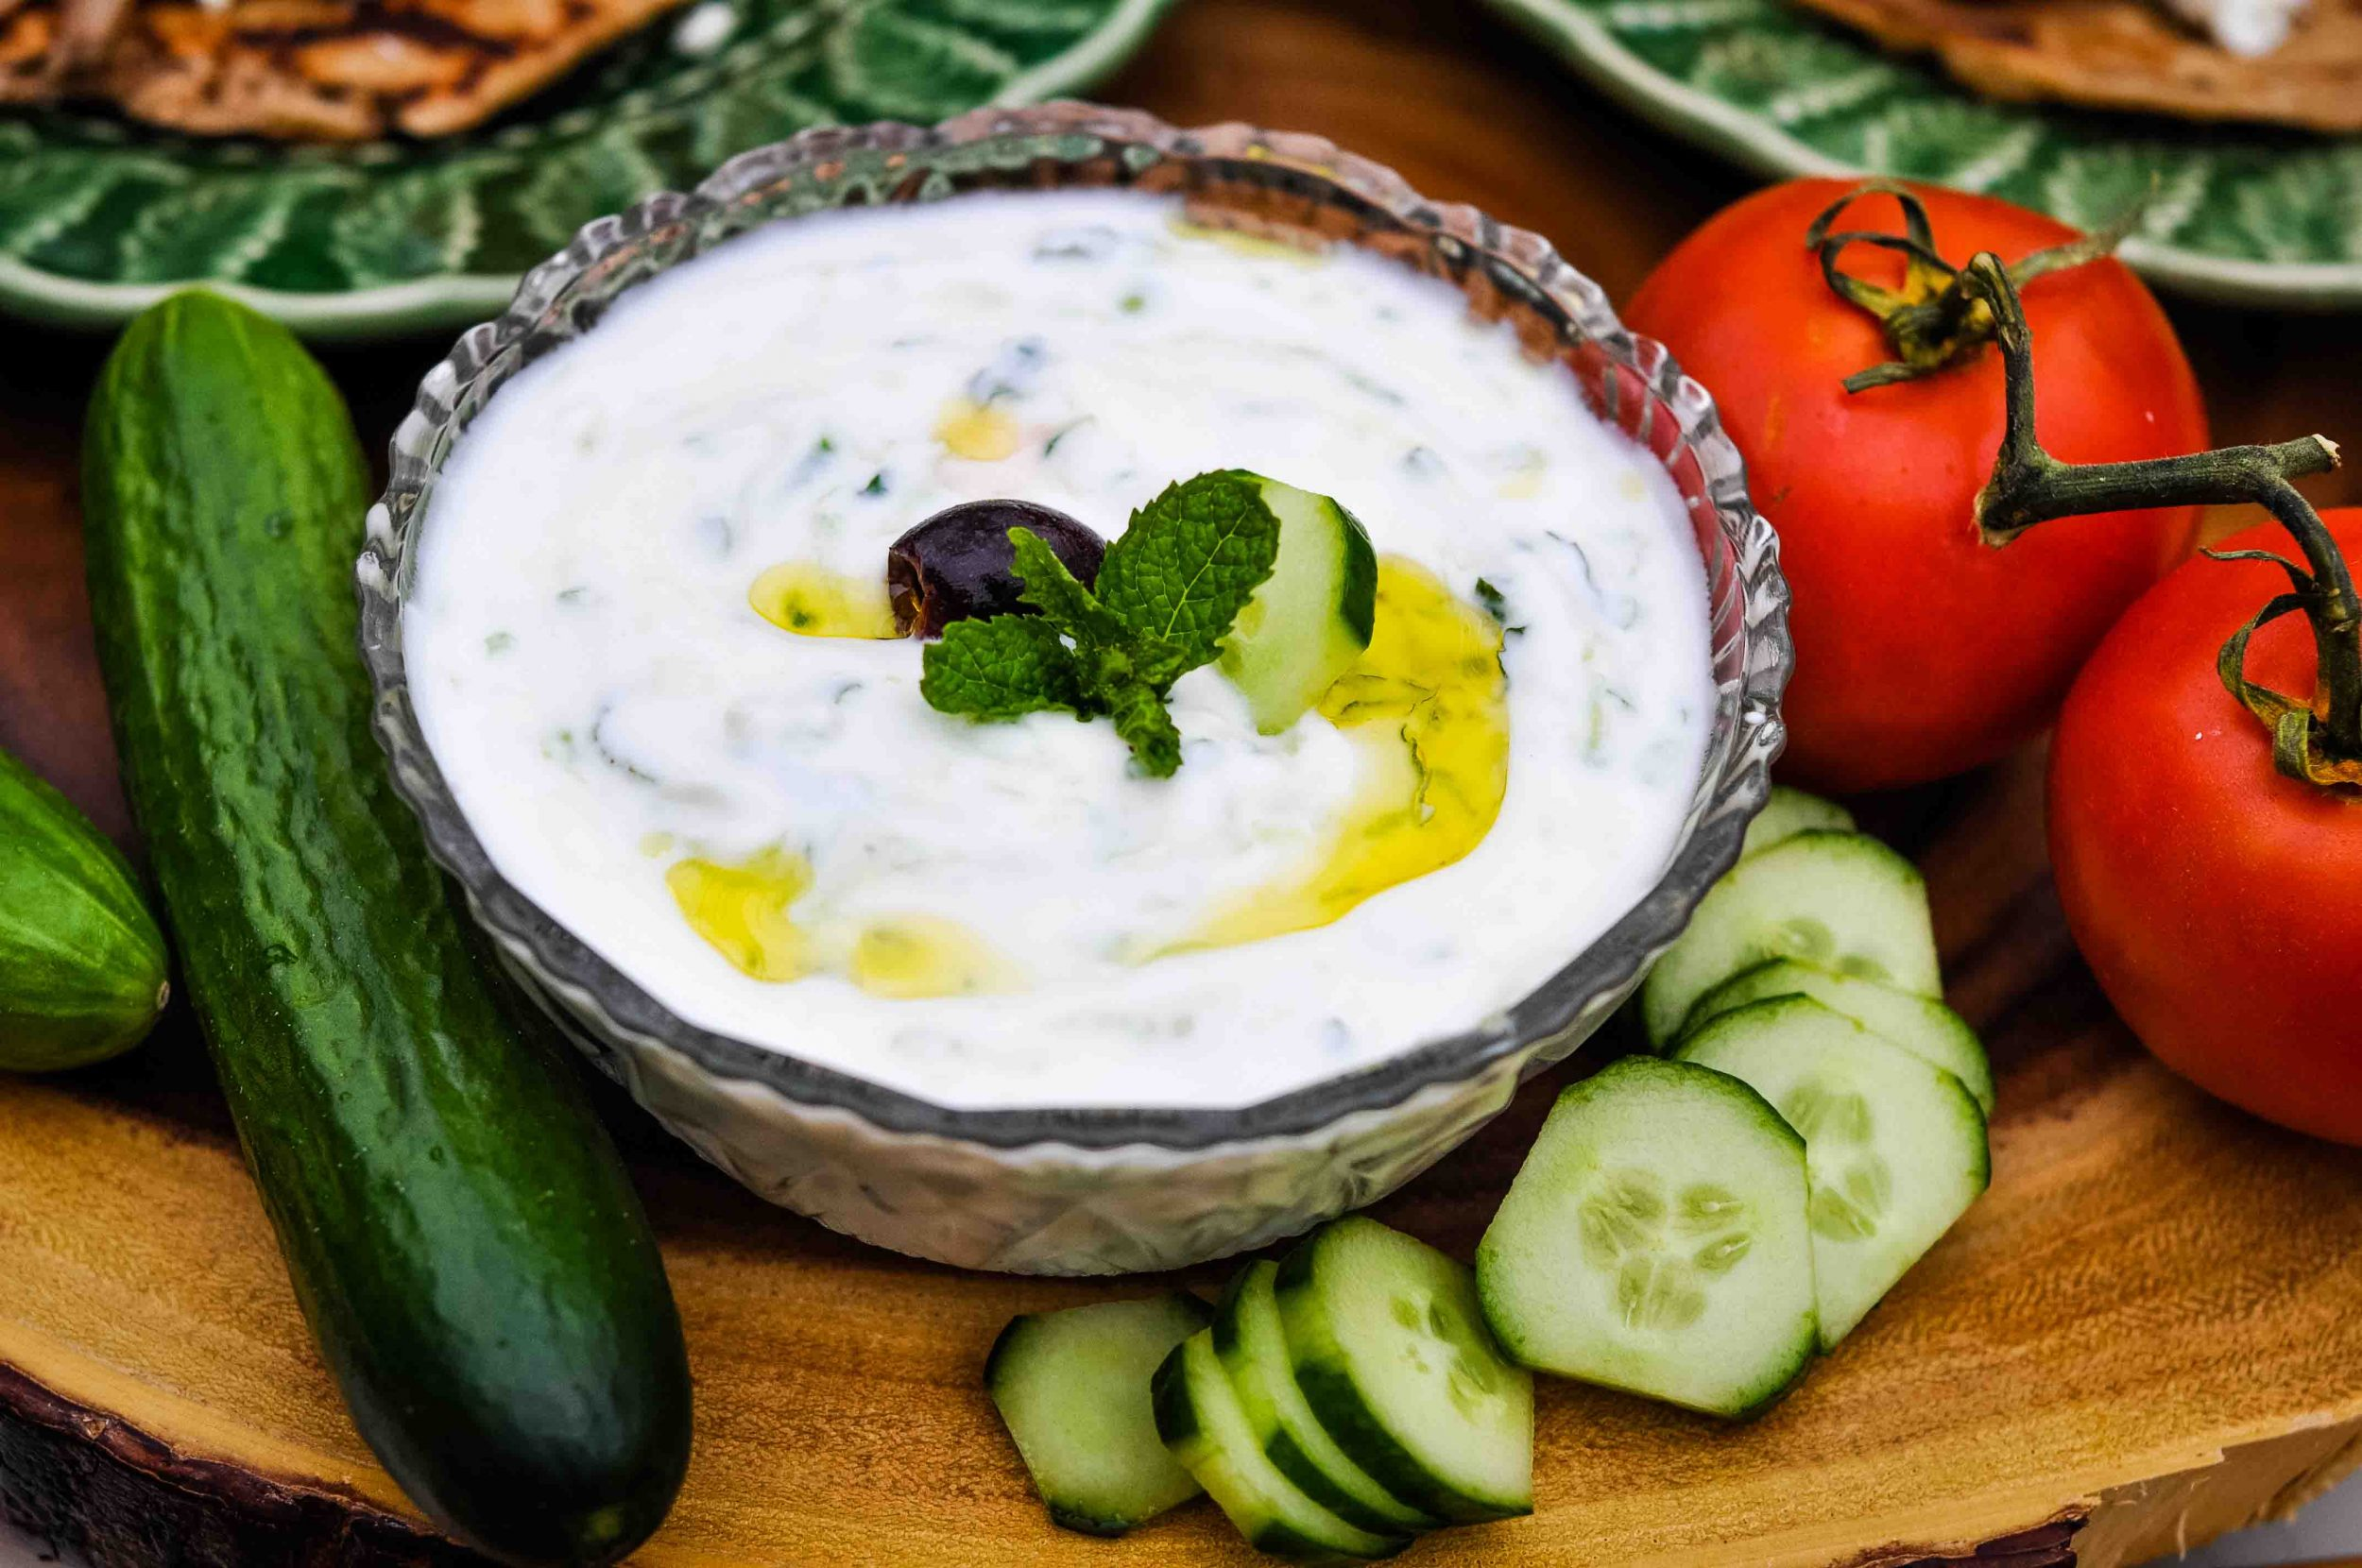 Bowl of tzatziki cucumber sauce topped with mint.